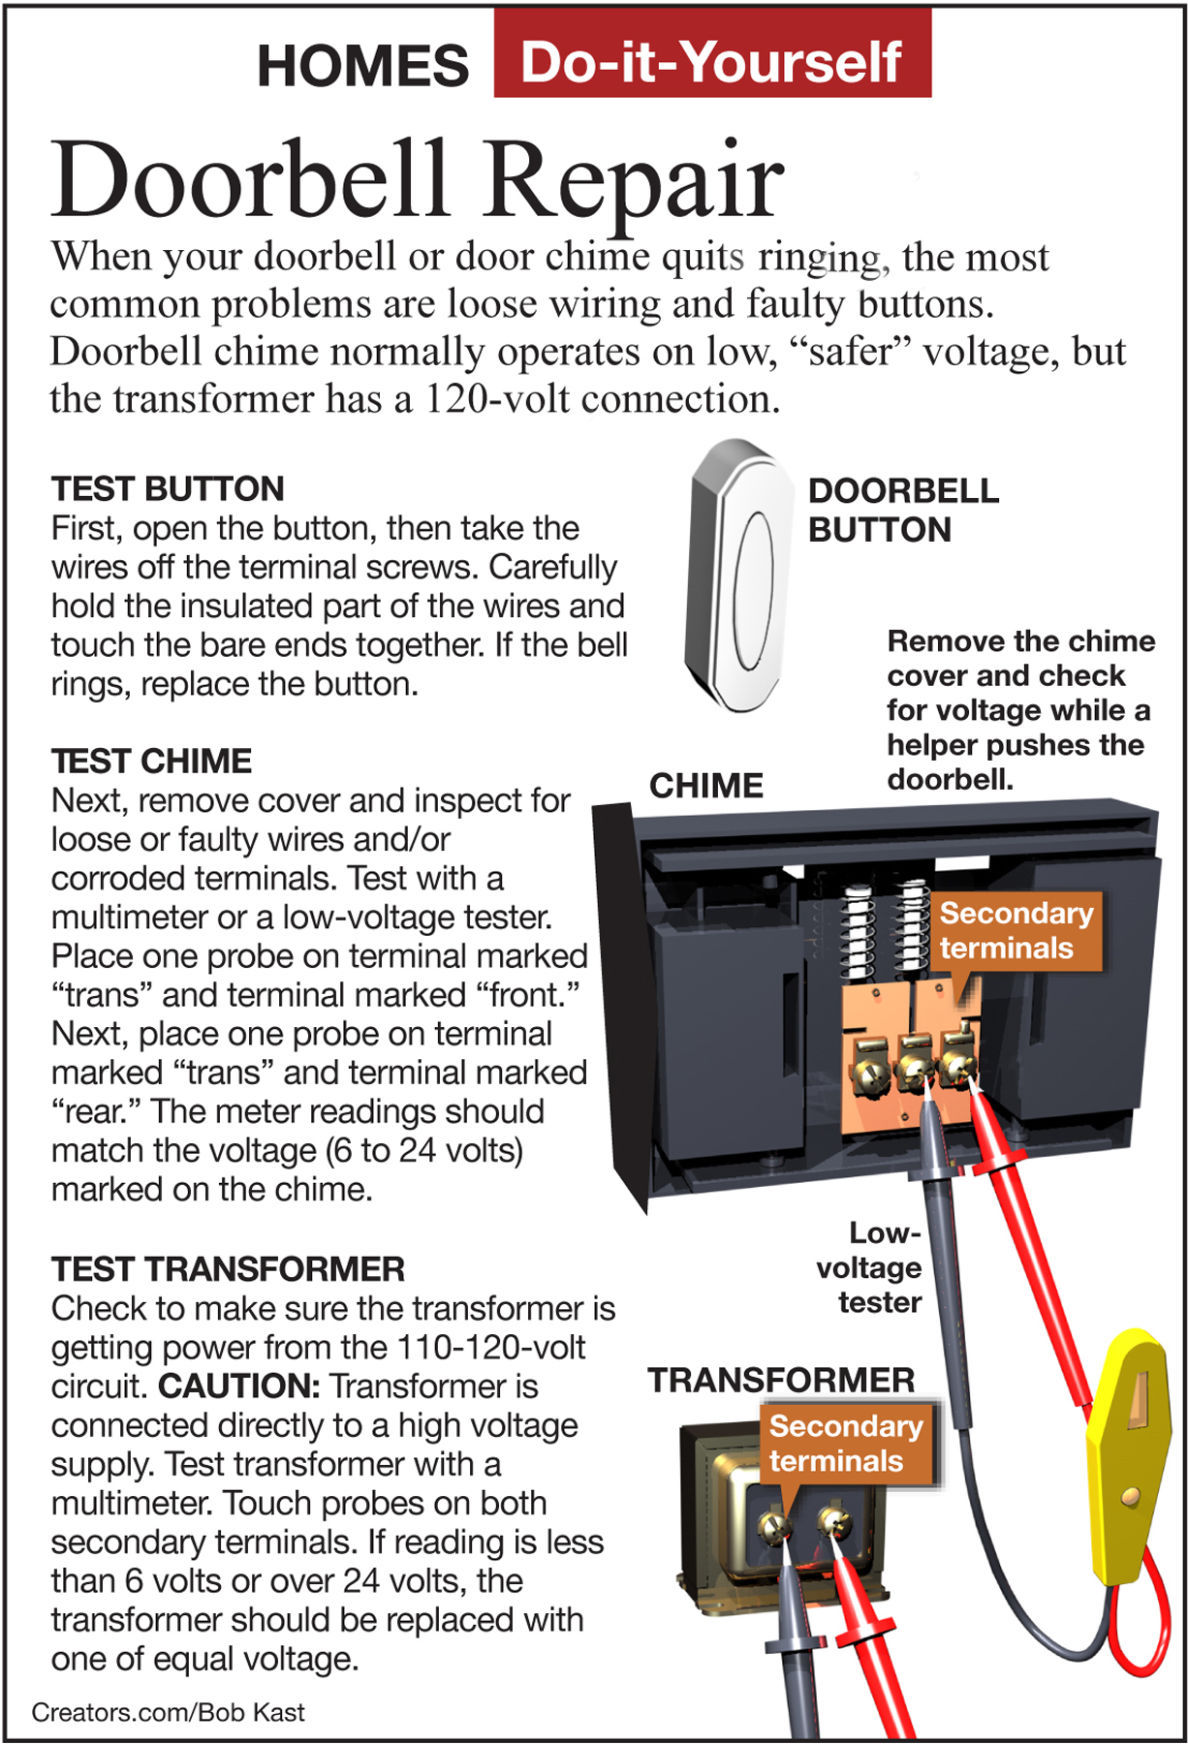 24 Volt Doorbell Transformer Wiring Diagram - Wiring Diagram  Volt Transformer Wiring Diagram on 277 volt wiring diagram, electrical transformer diagram, circuit diagram, 440 volt wiring diagram, 480 to 208 transformer diagram, step down transformer diagram, step up transformer diagram, current transformer connection diagram, neutral grounding resistor wiring diagram, 480 volt 3 phase service, distribution transformer diagram, 480 to 120 transformer diagram, catv system diagram, 240v transformer diagram, 3 phase transformer connection diagram, xlerator hand dryer wiring diagram, 240 volt wiring diagram, 24 volt battery charger wiring diagram, flyback transformer diagram, 120 208 transformer diagram,